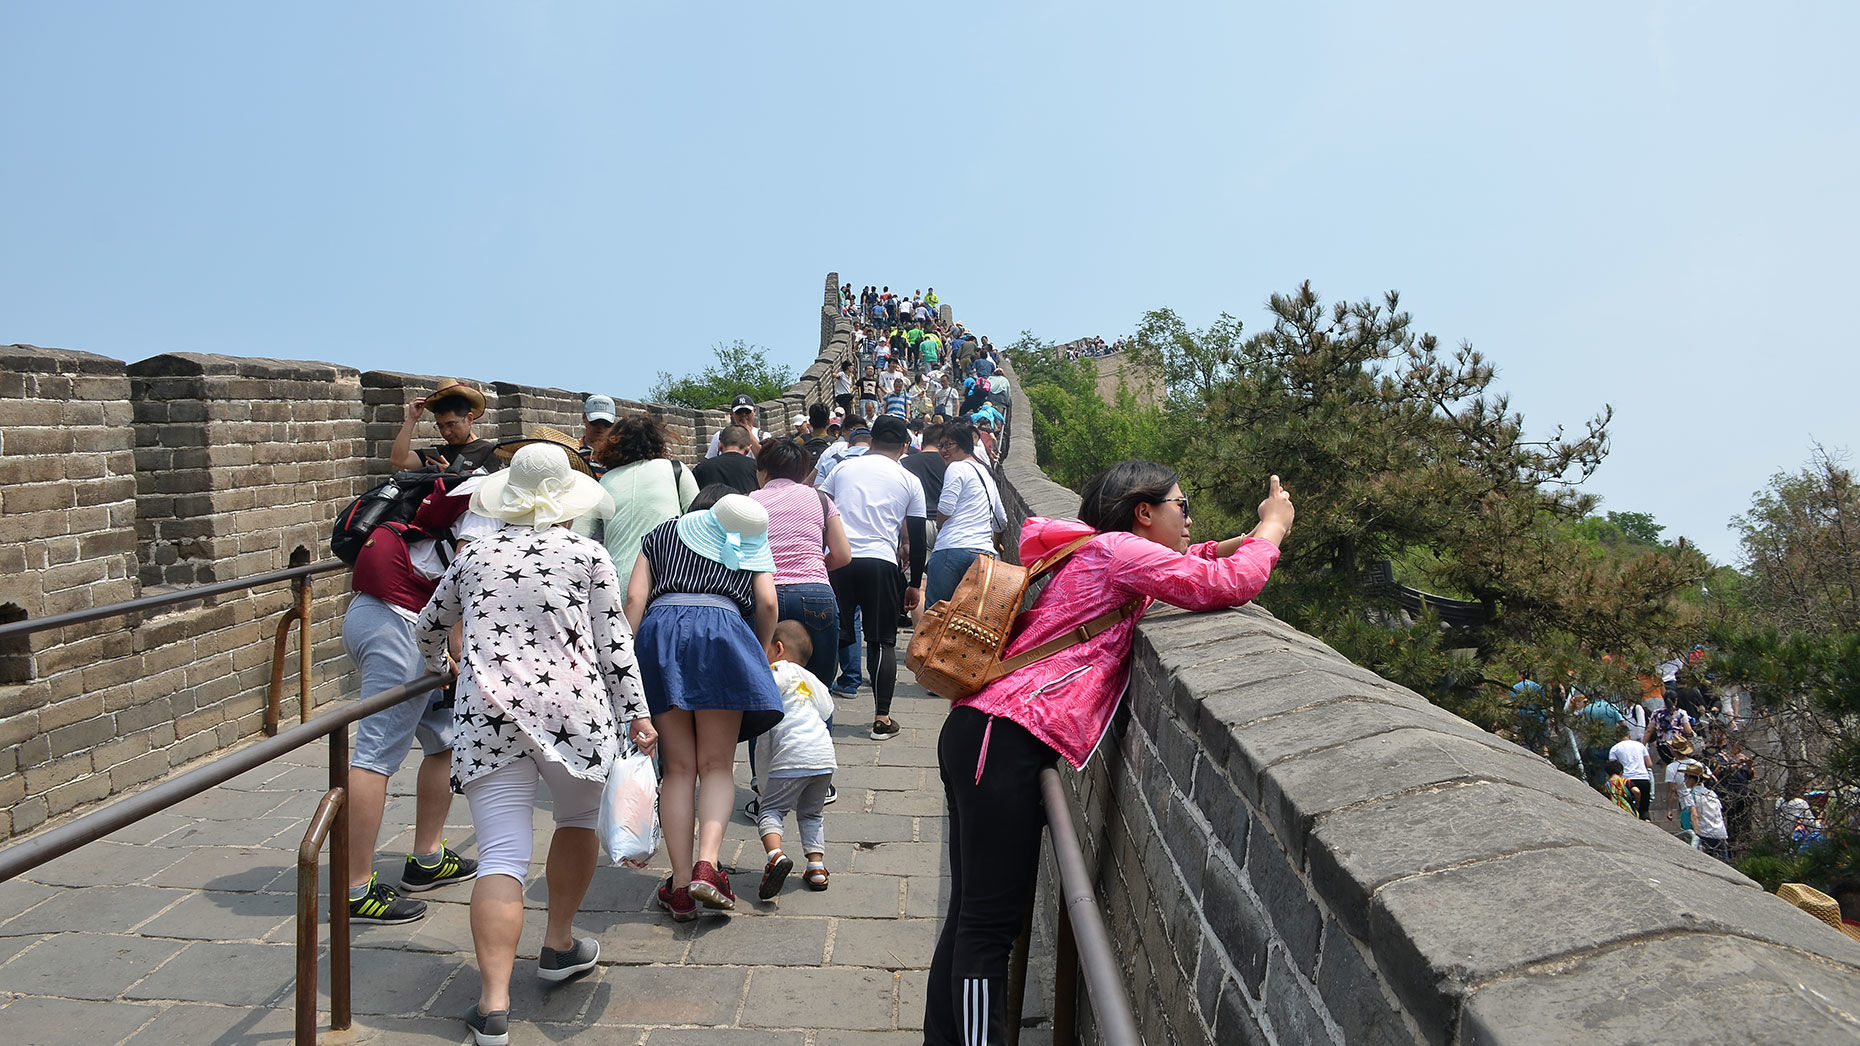 Visitors on the Great Wall of China. Photo by shankar s./Flickr